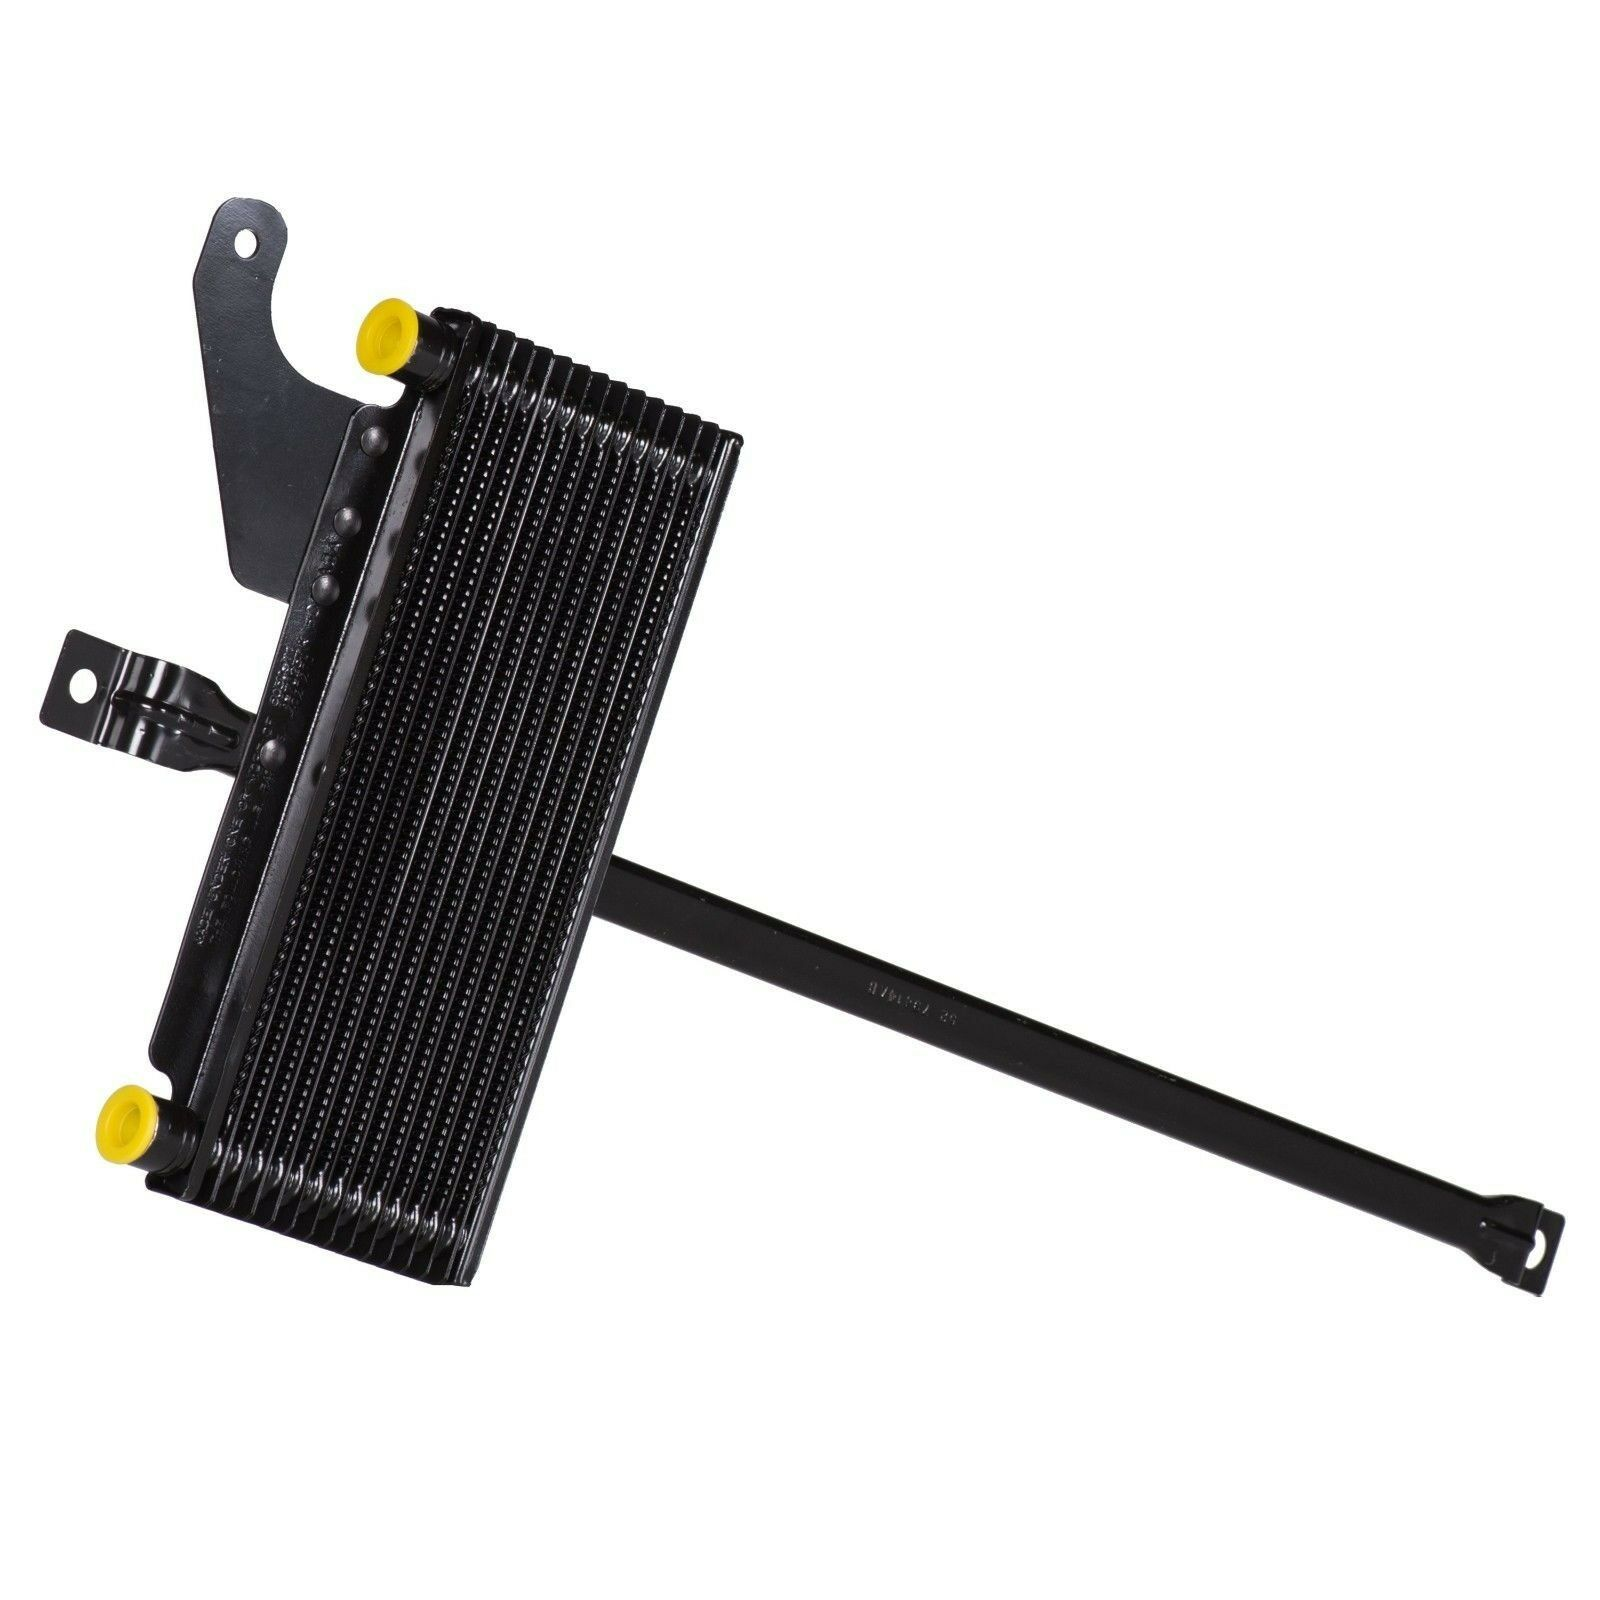 1999 2000 Jeep Grand Cherokee Automatic Transmission Oil Cooler Oem New  Mopar 1 Of 5FREE Shipping ...